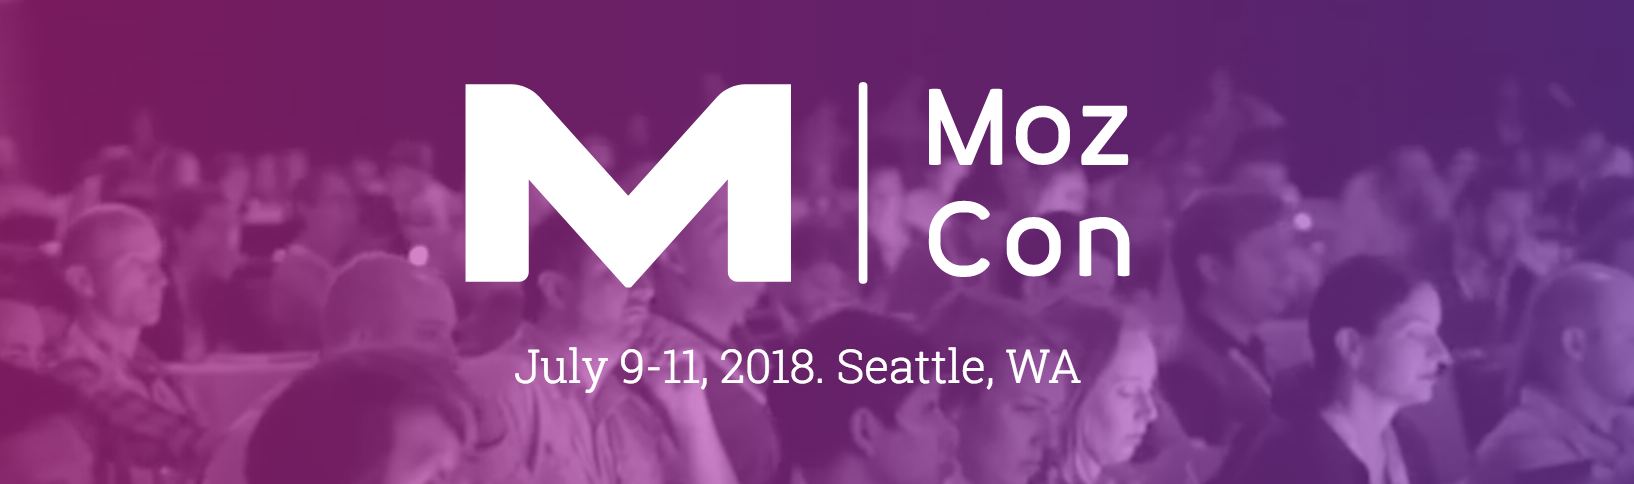 MozCon 2018 Marketing Conference